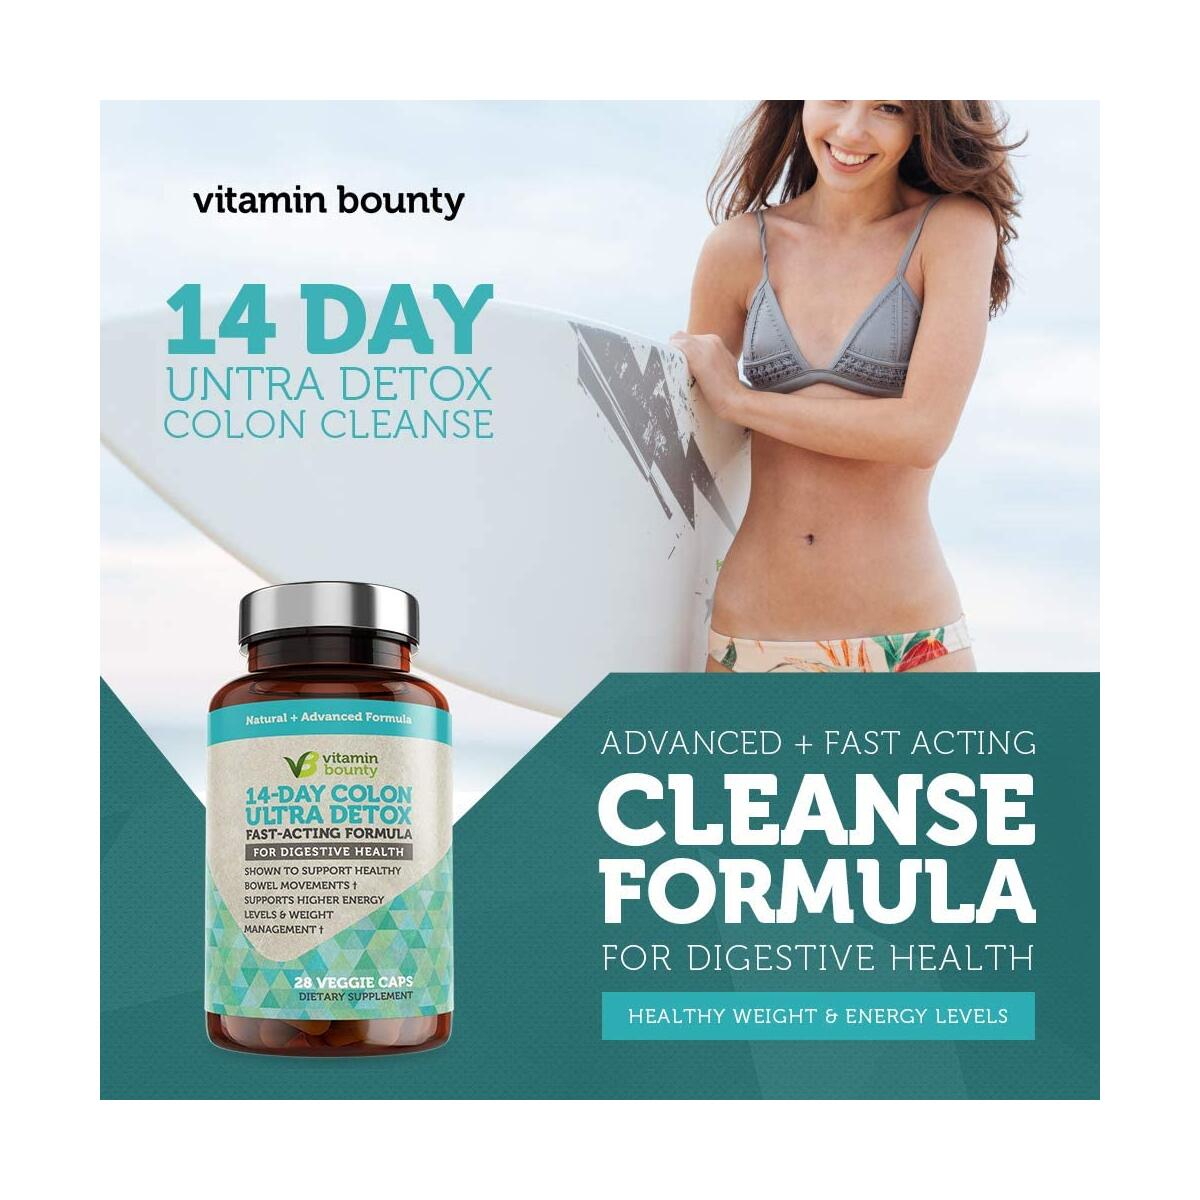 Colon Cleanse Detox (14 Day Cleanse) for Gut Health and Detox - Natural, Gentle & Effective